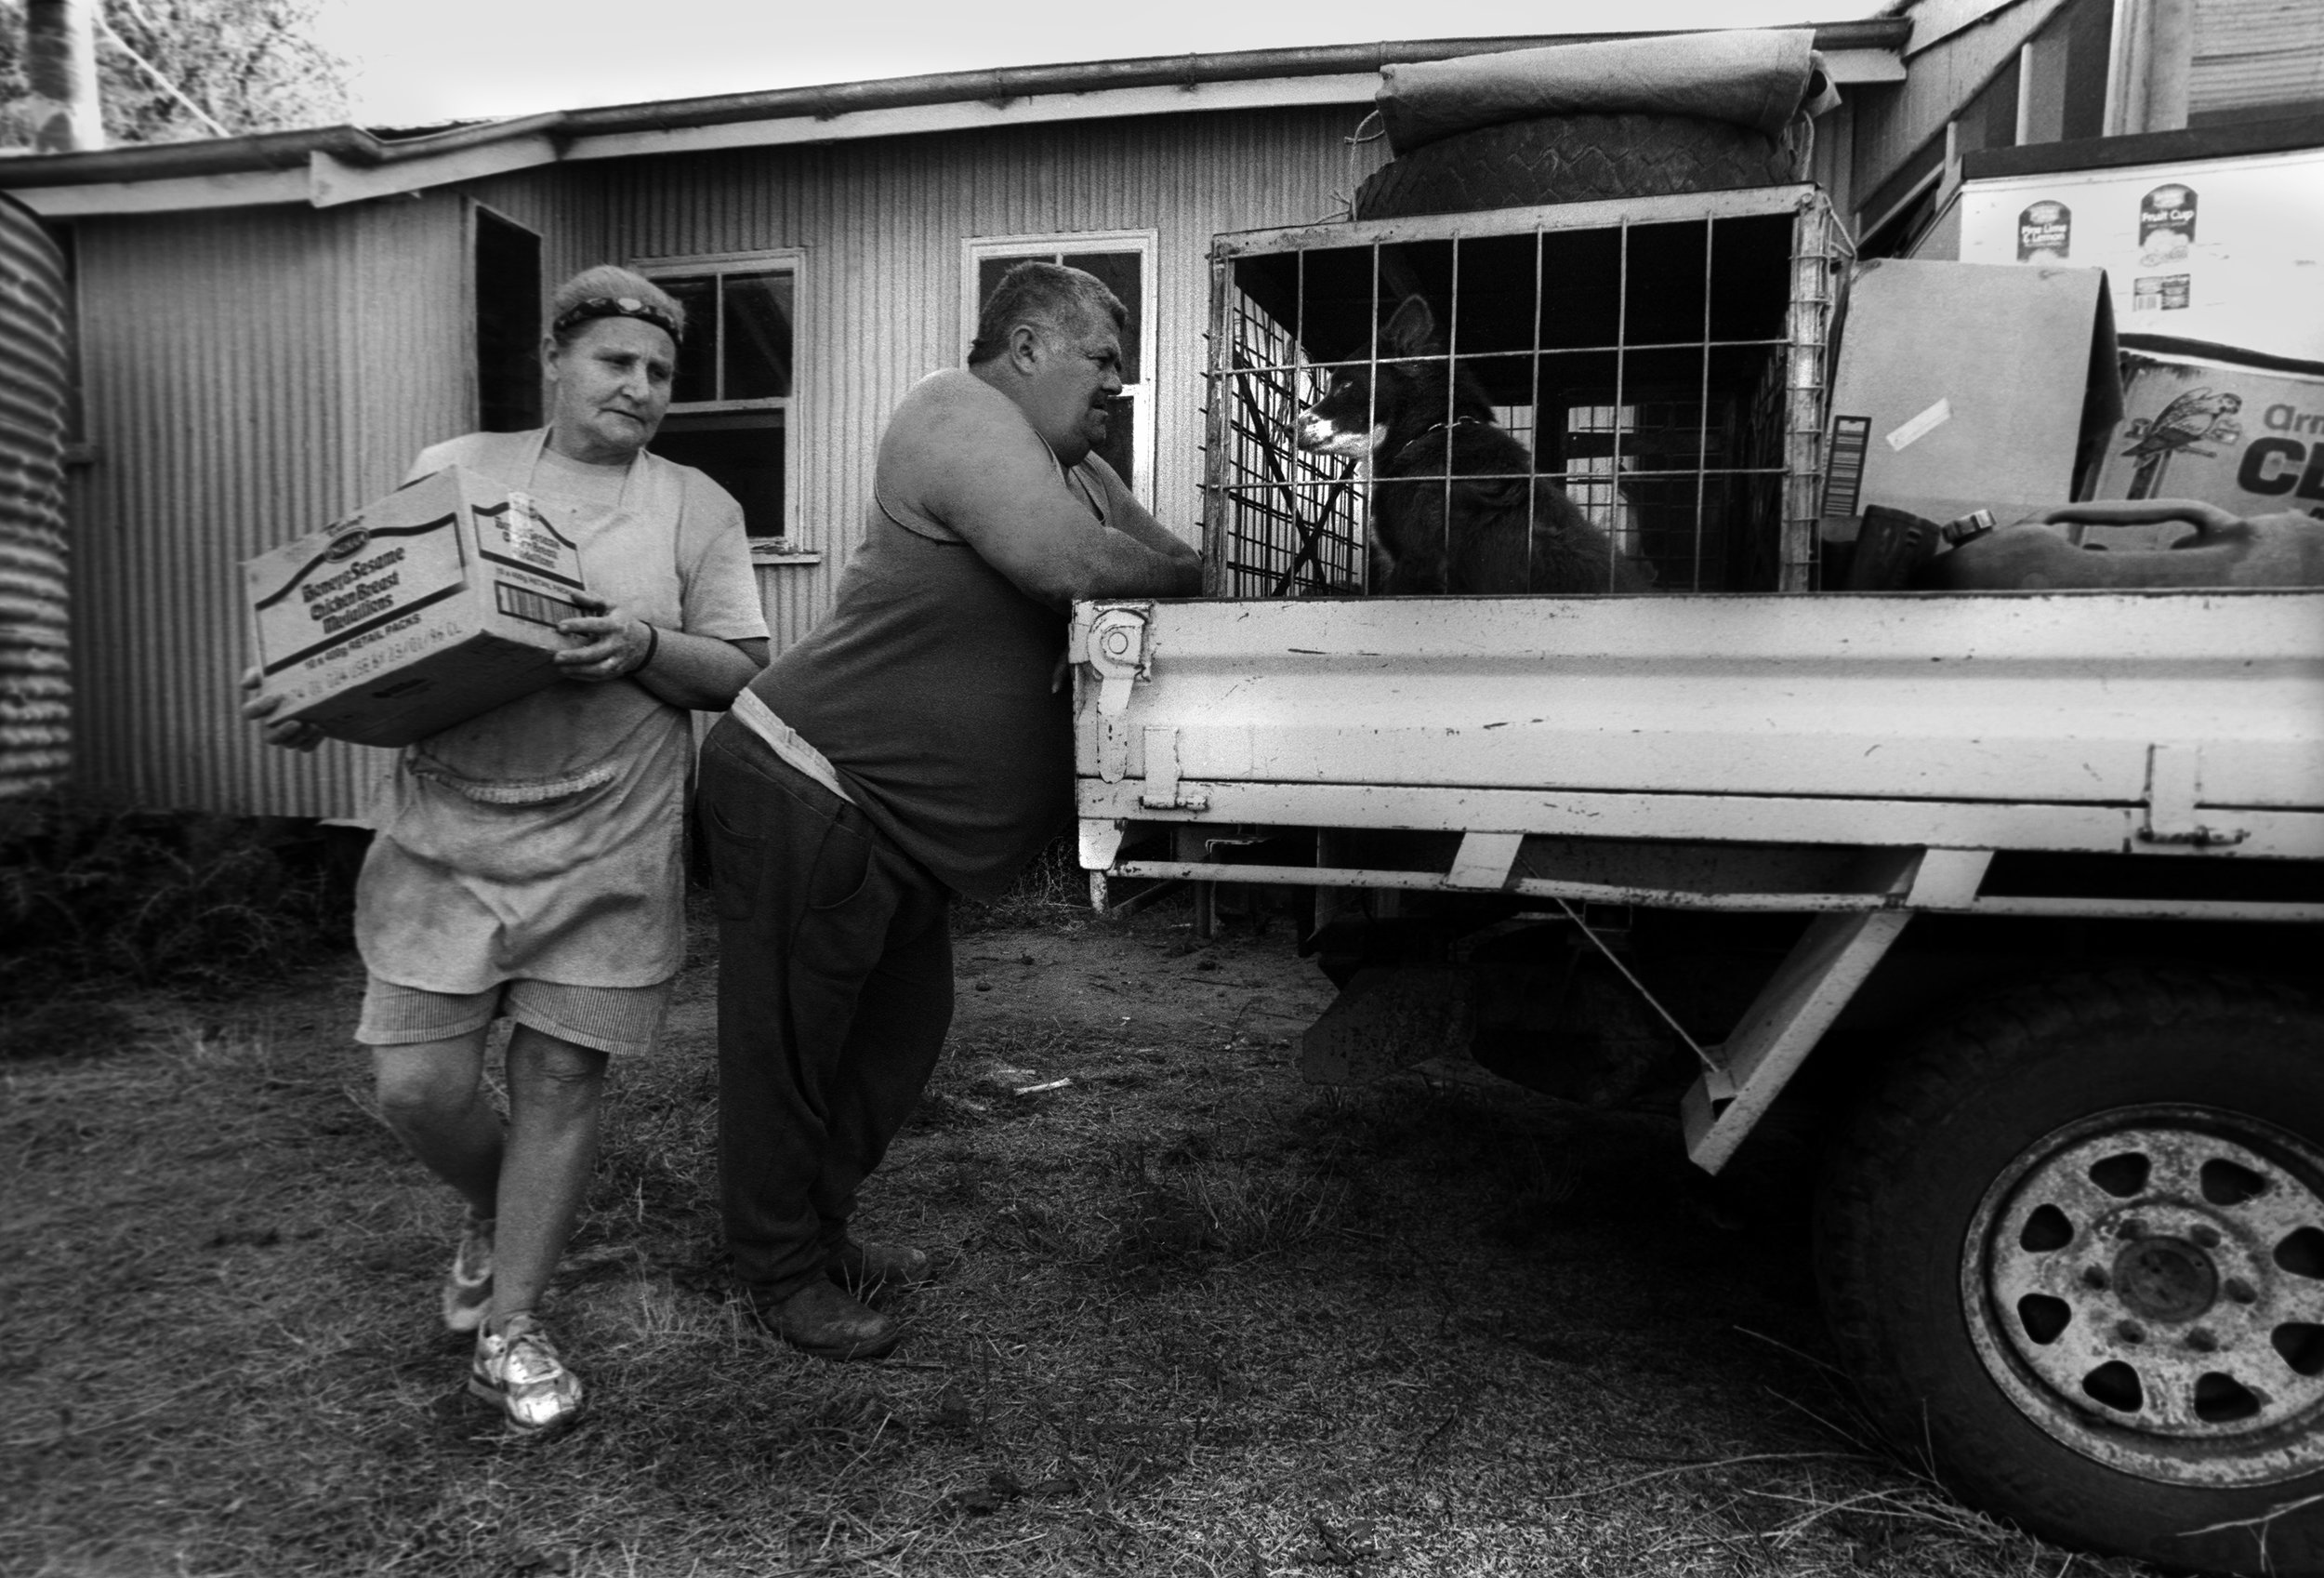 The shearer's cook and her husband pack the 'ute' (utility truck) before travelling to the next sheep station. Outback QLD, Australia. 1997